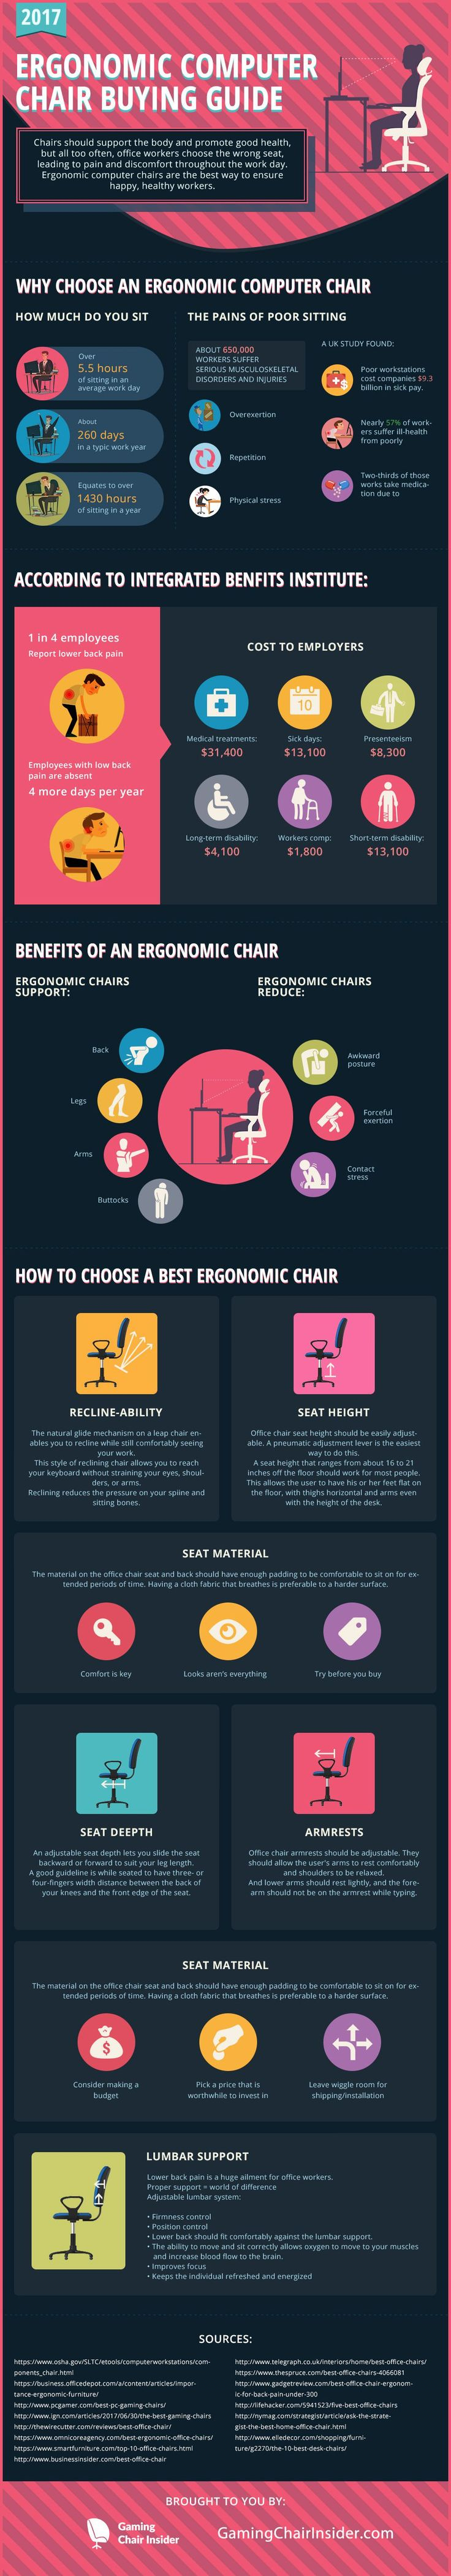 Ergonomic Computer Chair Buying Guide #Infographic #ComputerChair